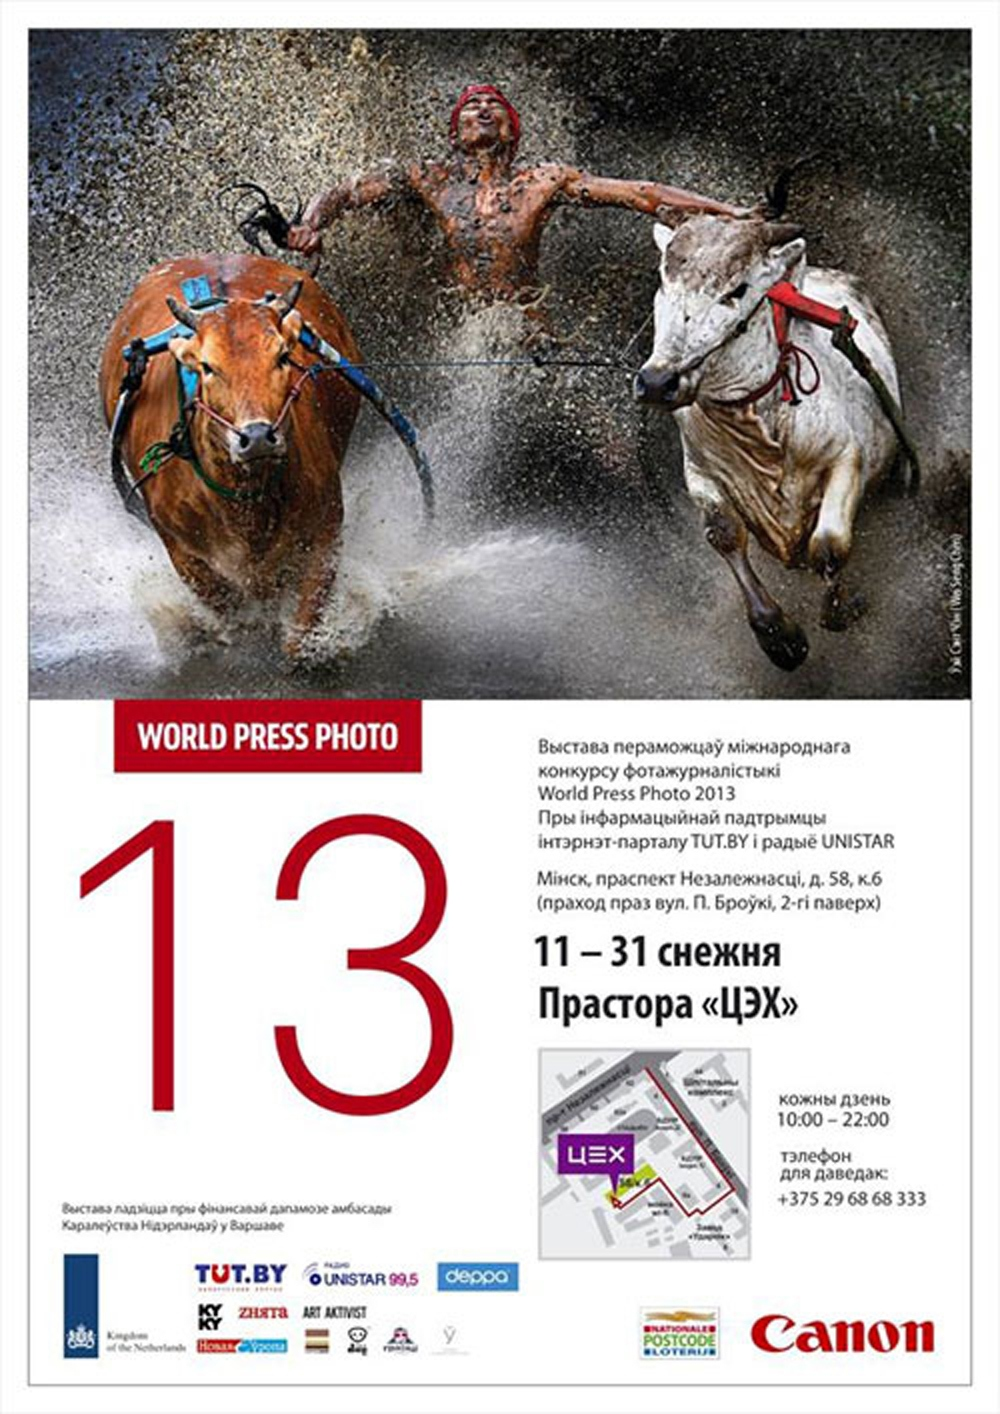 world press photo 2013 в минске